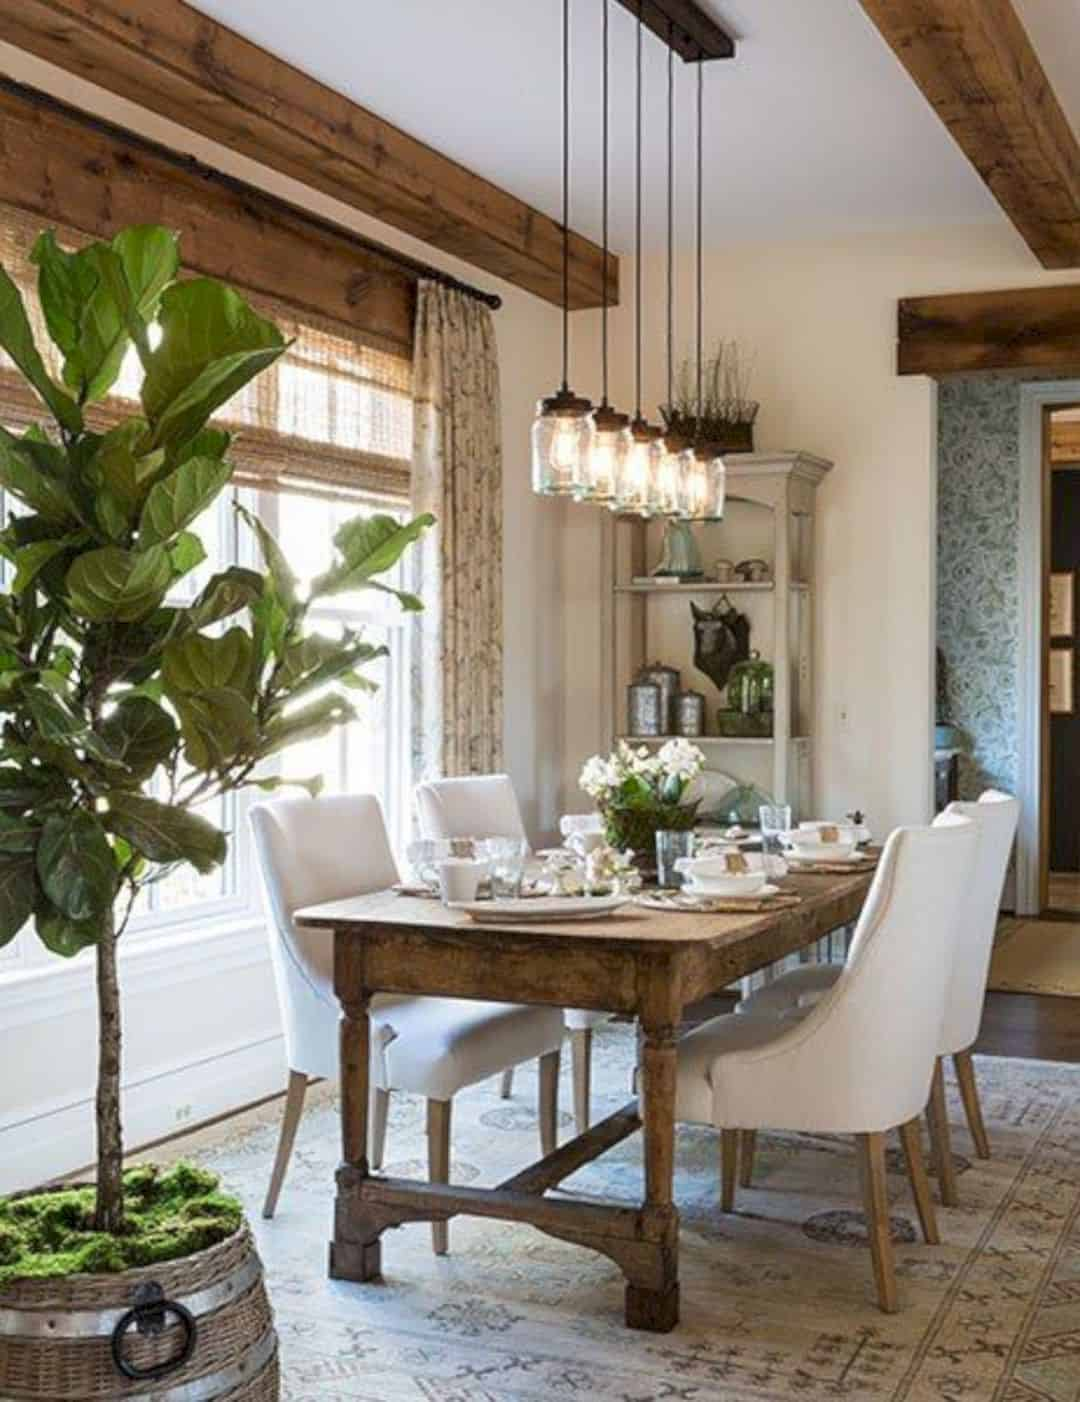 16 rustic furniture ideas for a simple yet stylish home design 1